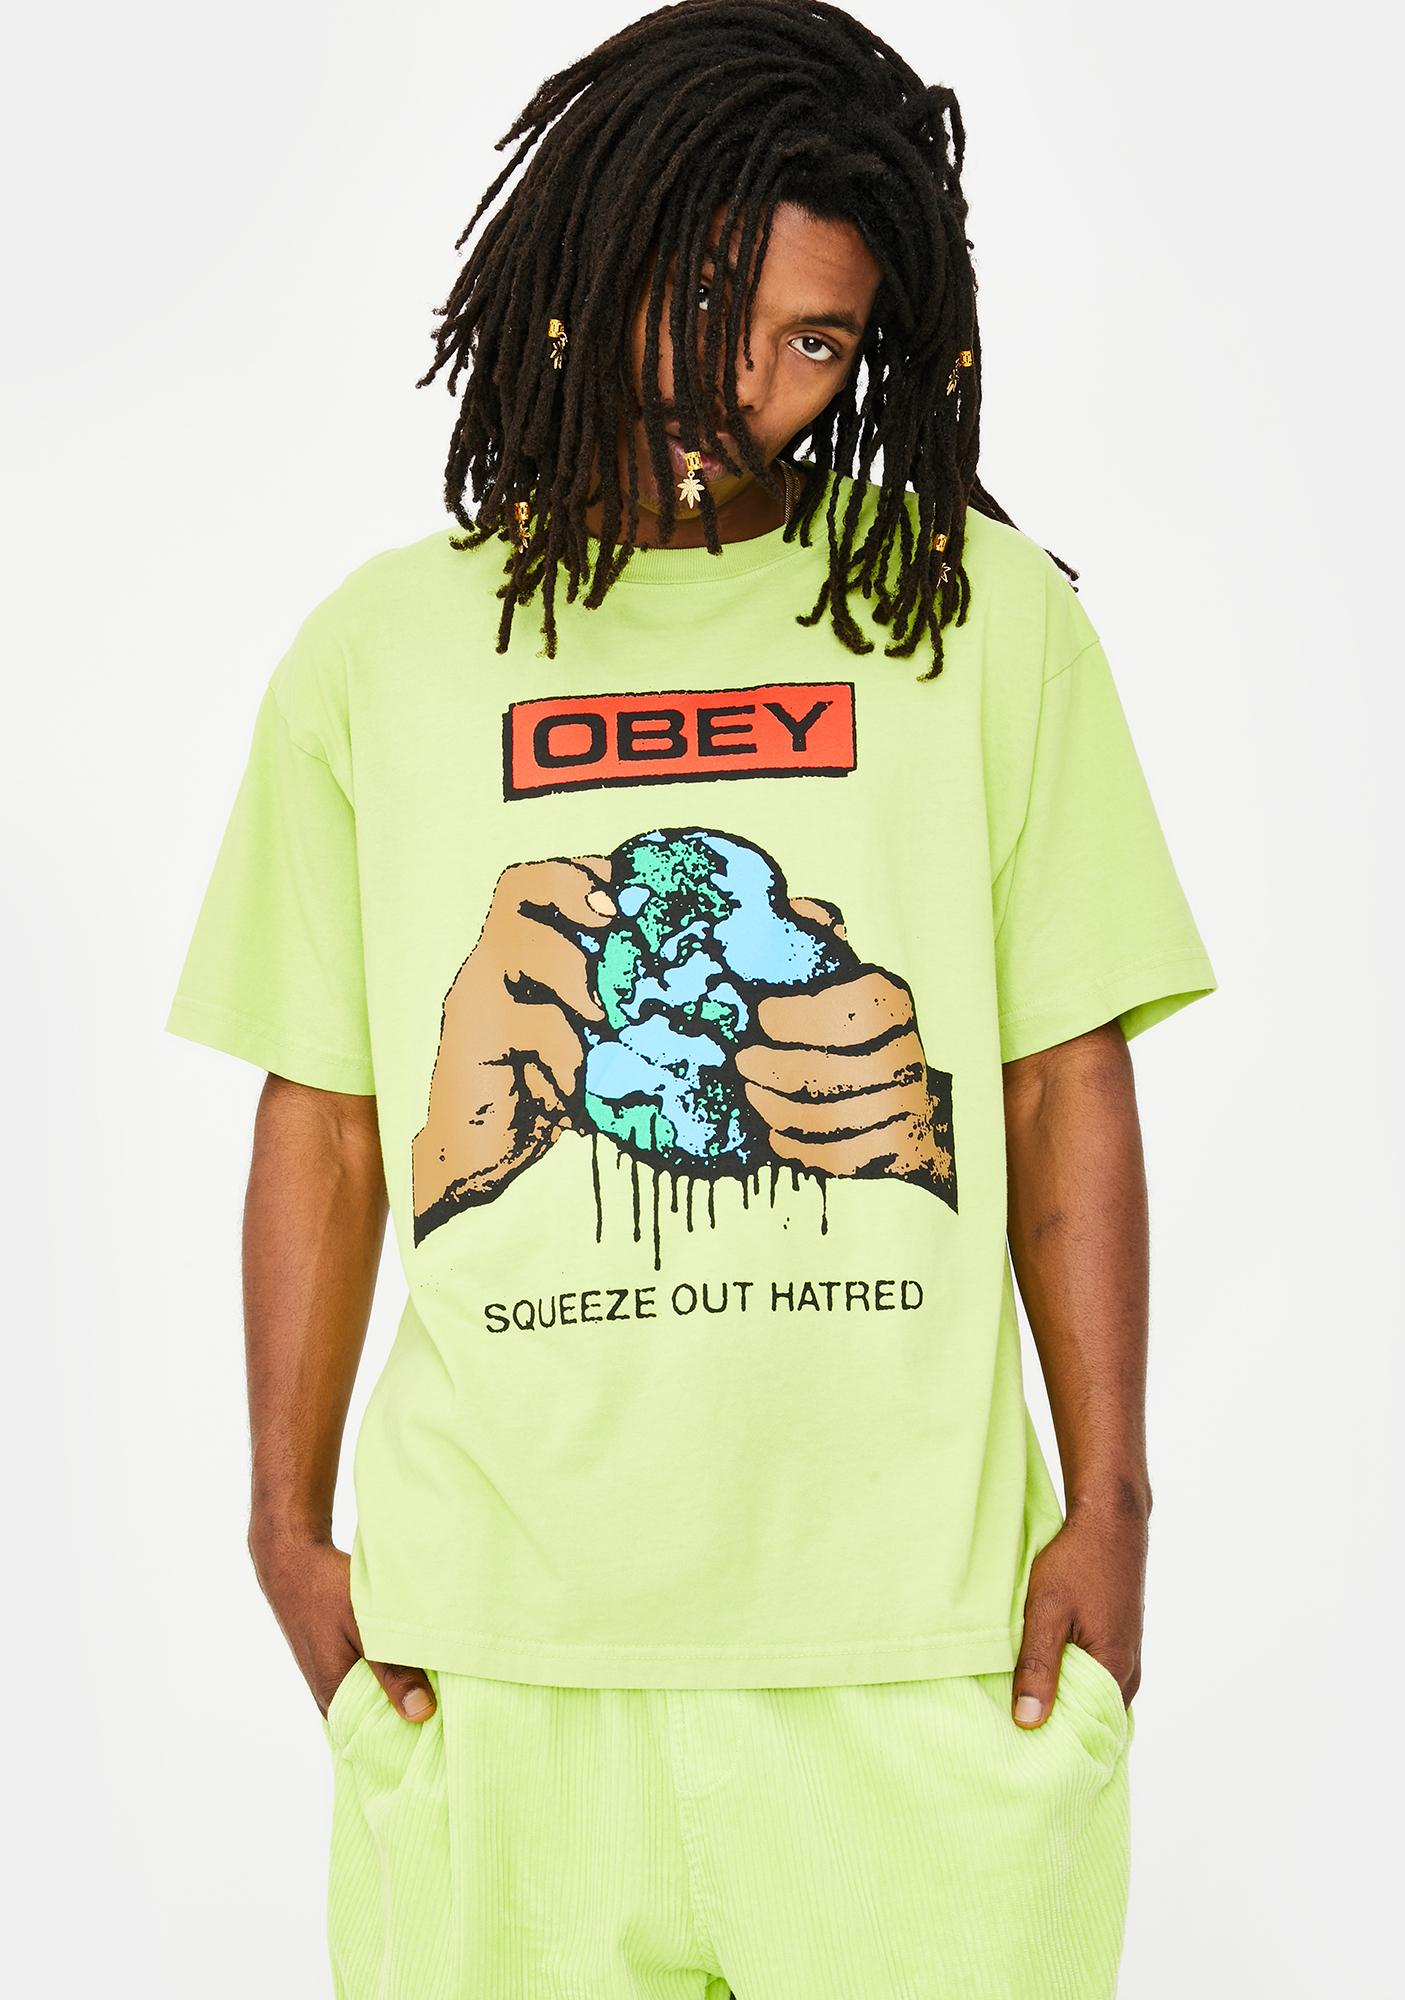 Obey Squeeze Out Hatred Graphic Tee